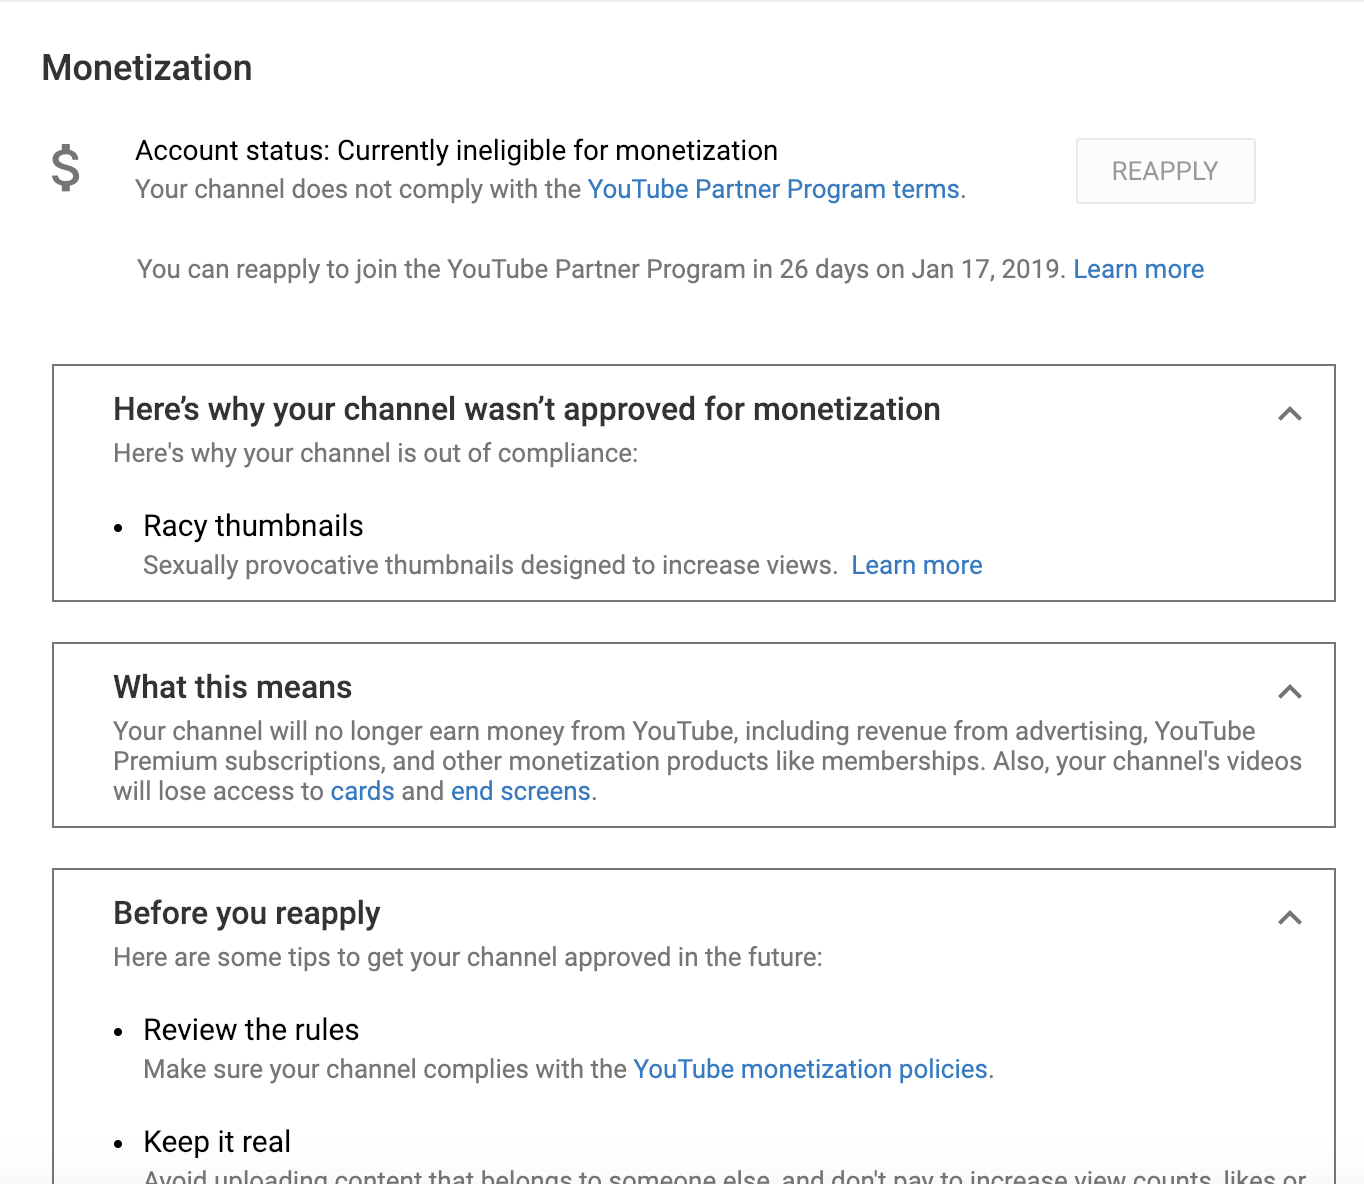 Monetization disabled because thumbnails with Good Community